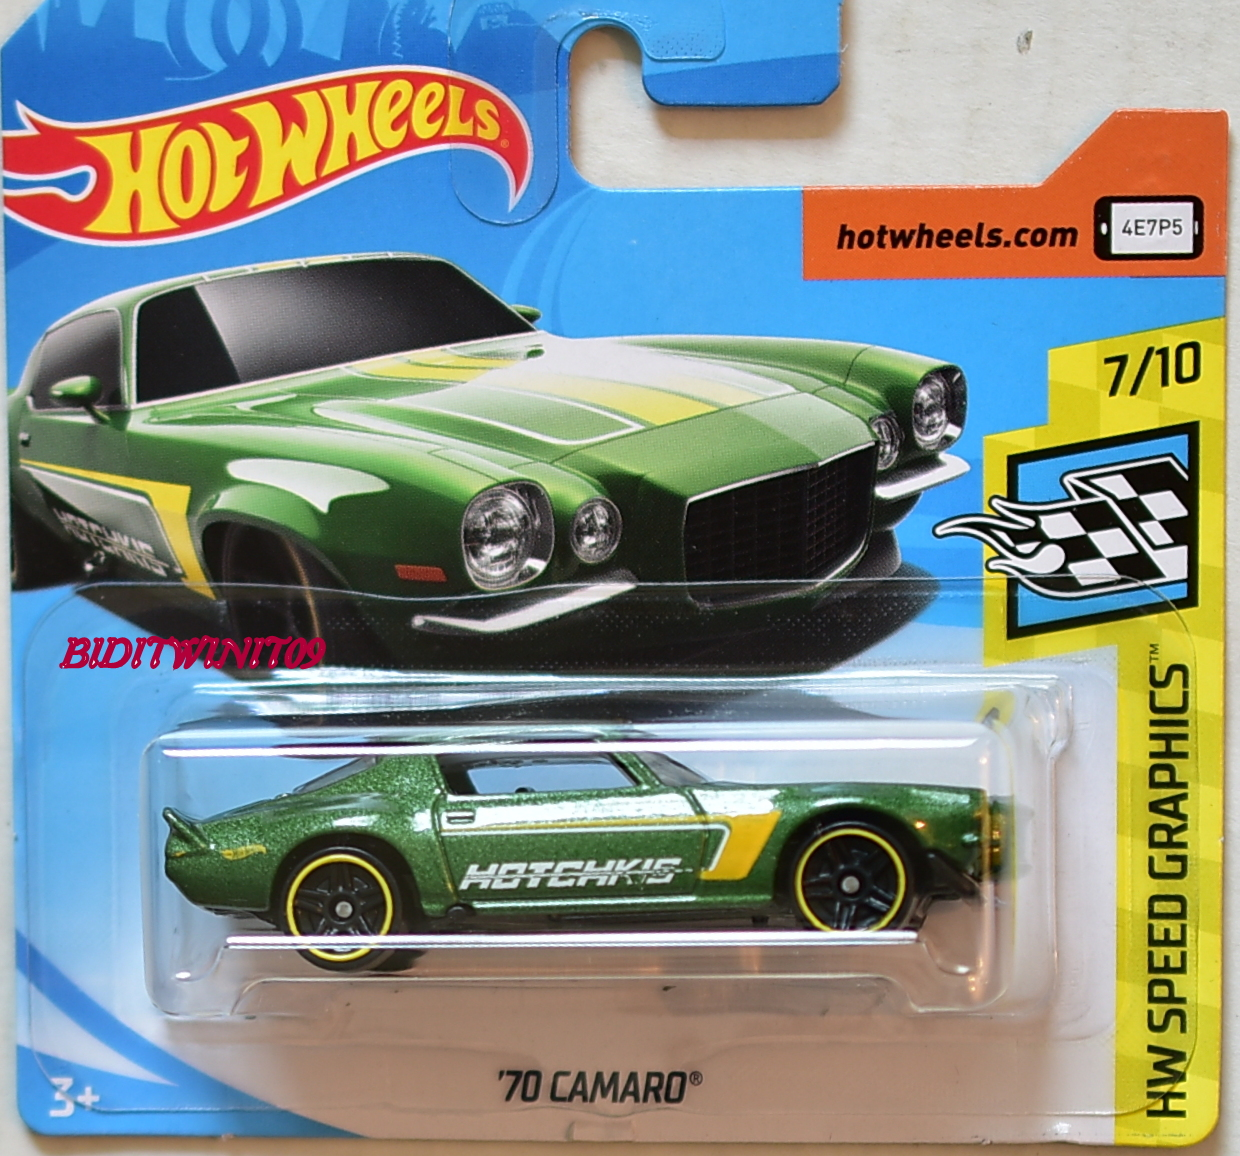 hot wheels 2018 hw speed graphics 39 70 camaro green short card 0005037 biditwinit09. Black Bedroom Furniture Sets. Home Design Ideas